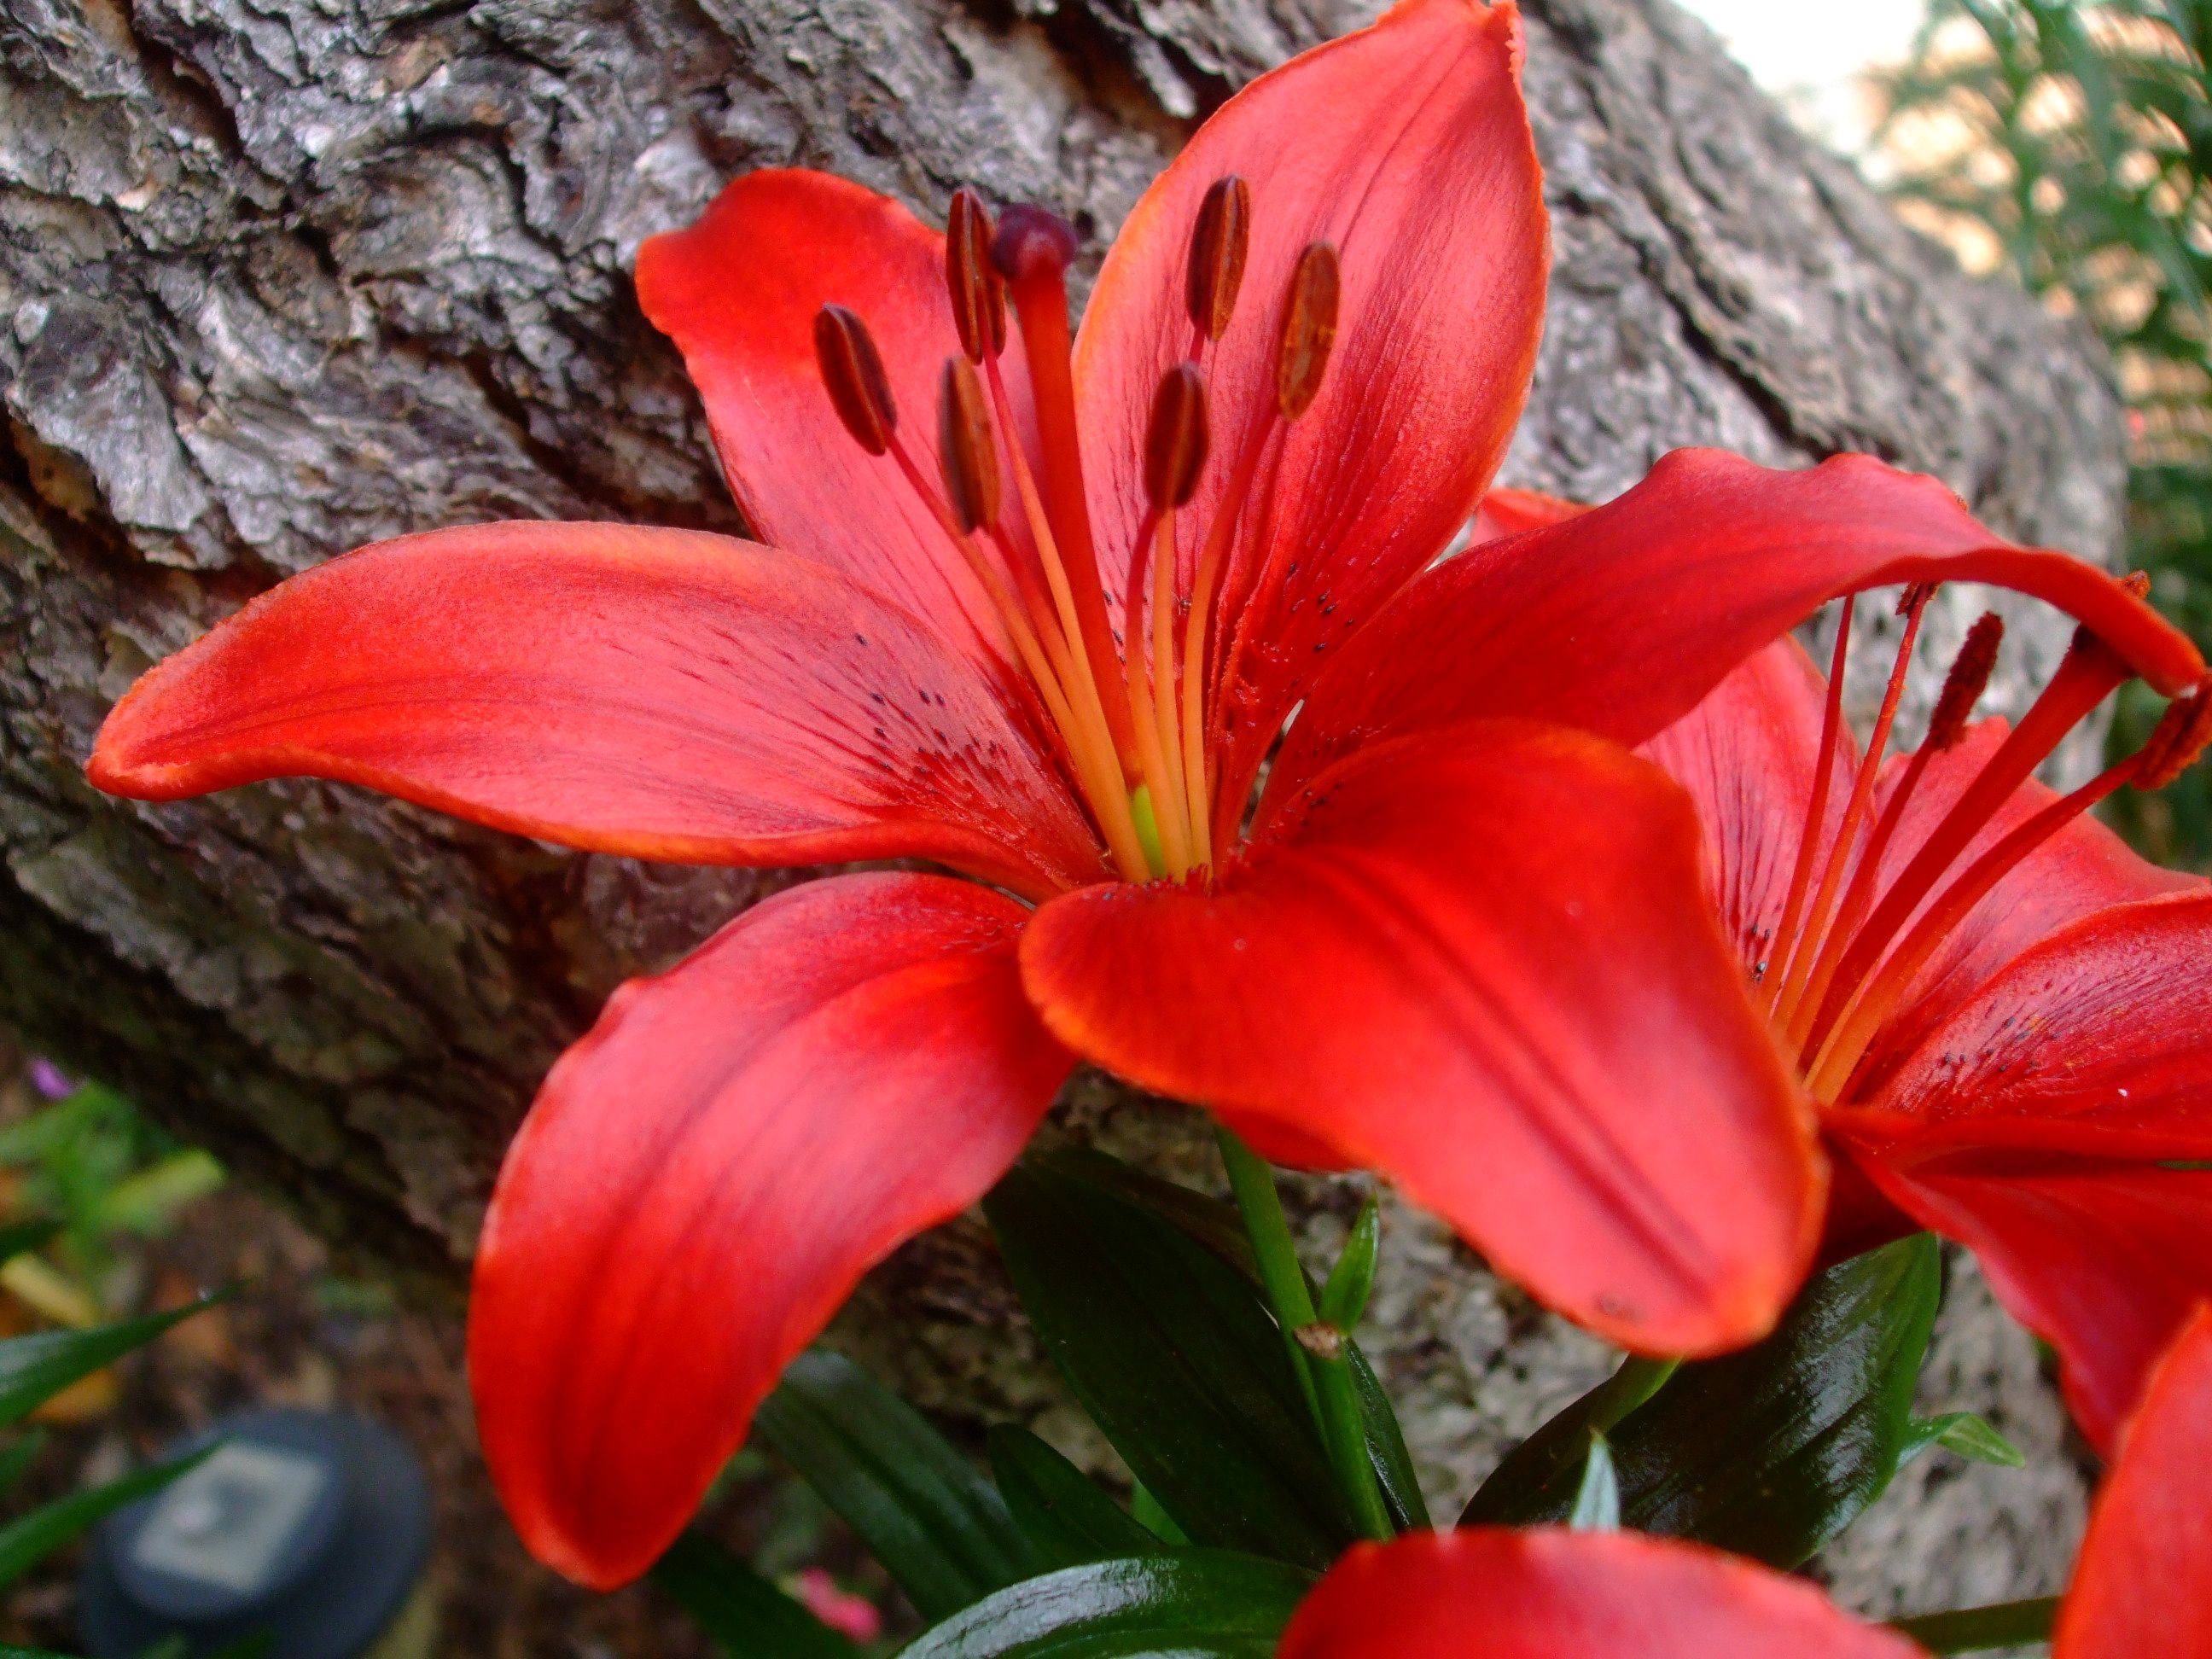 Red lily | Flowers | Pinterest | Red lily, Flowers and Gardens